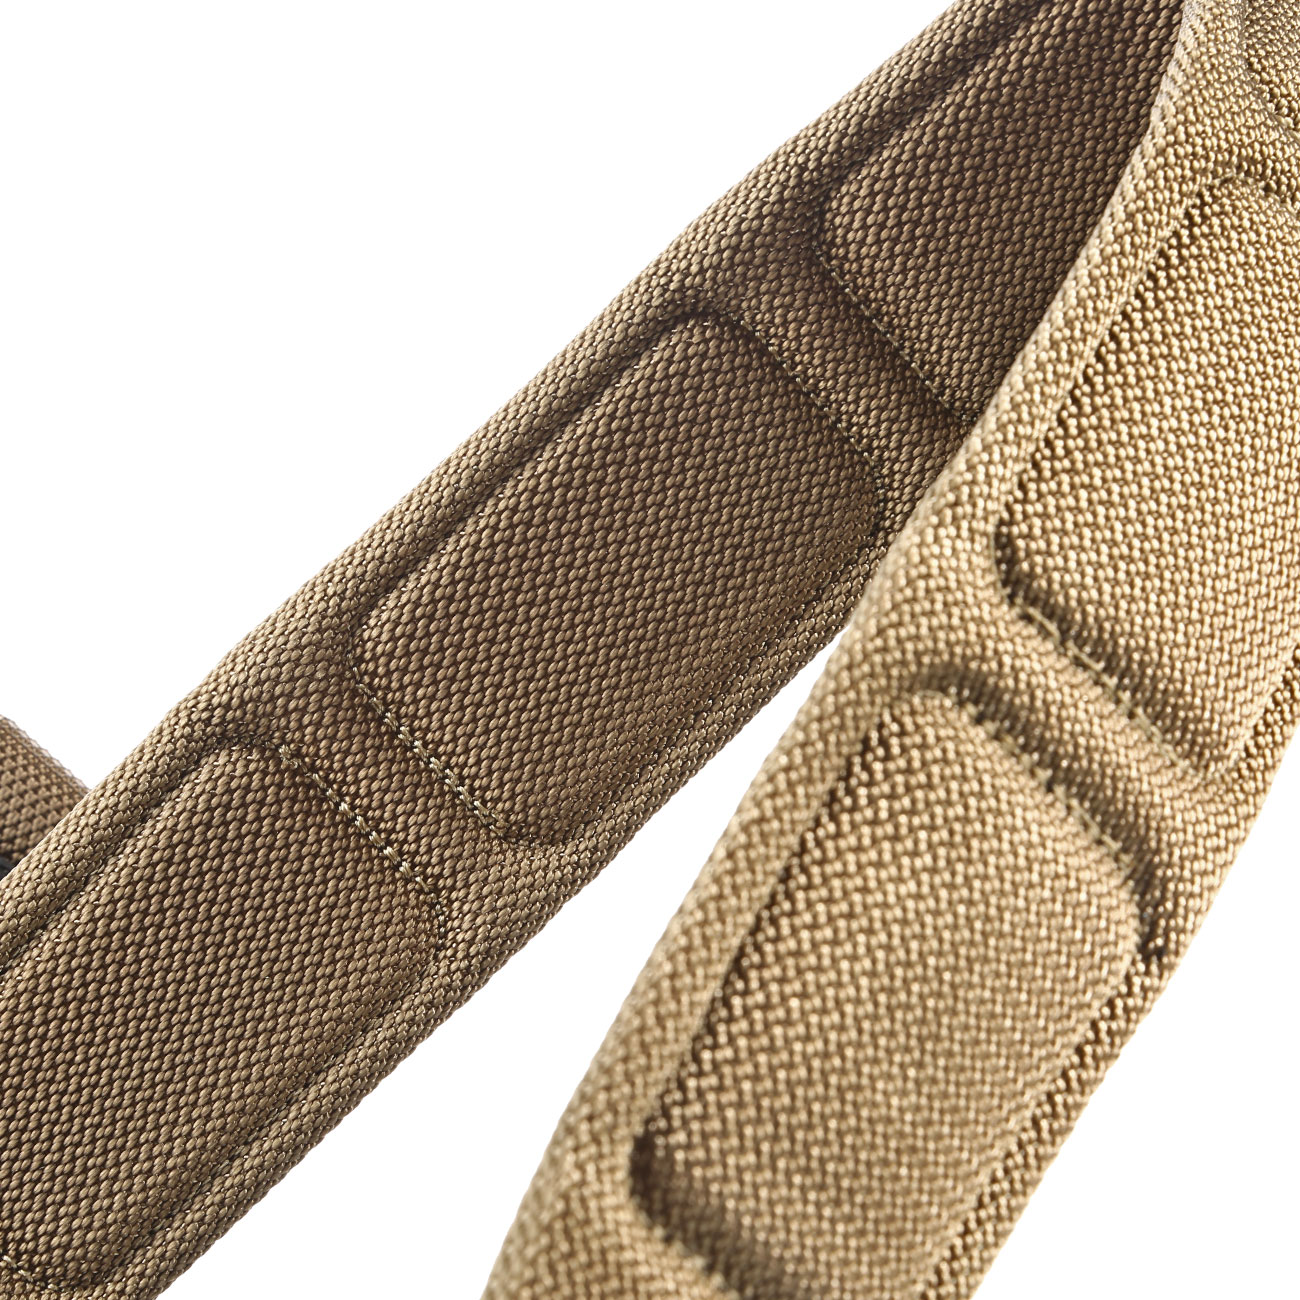 MagPul MS1 Multi-Mission Padded Sling 2-Punkt Tragegurt coyote 2